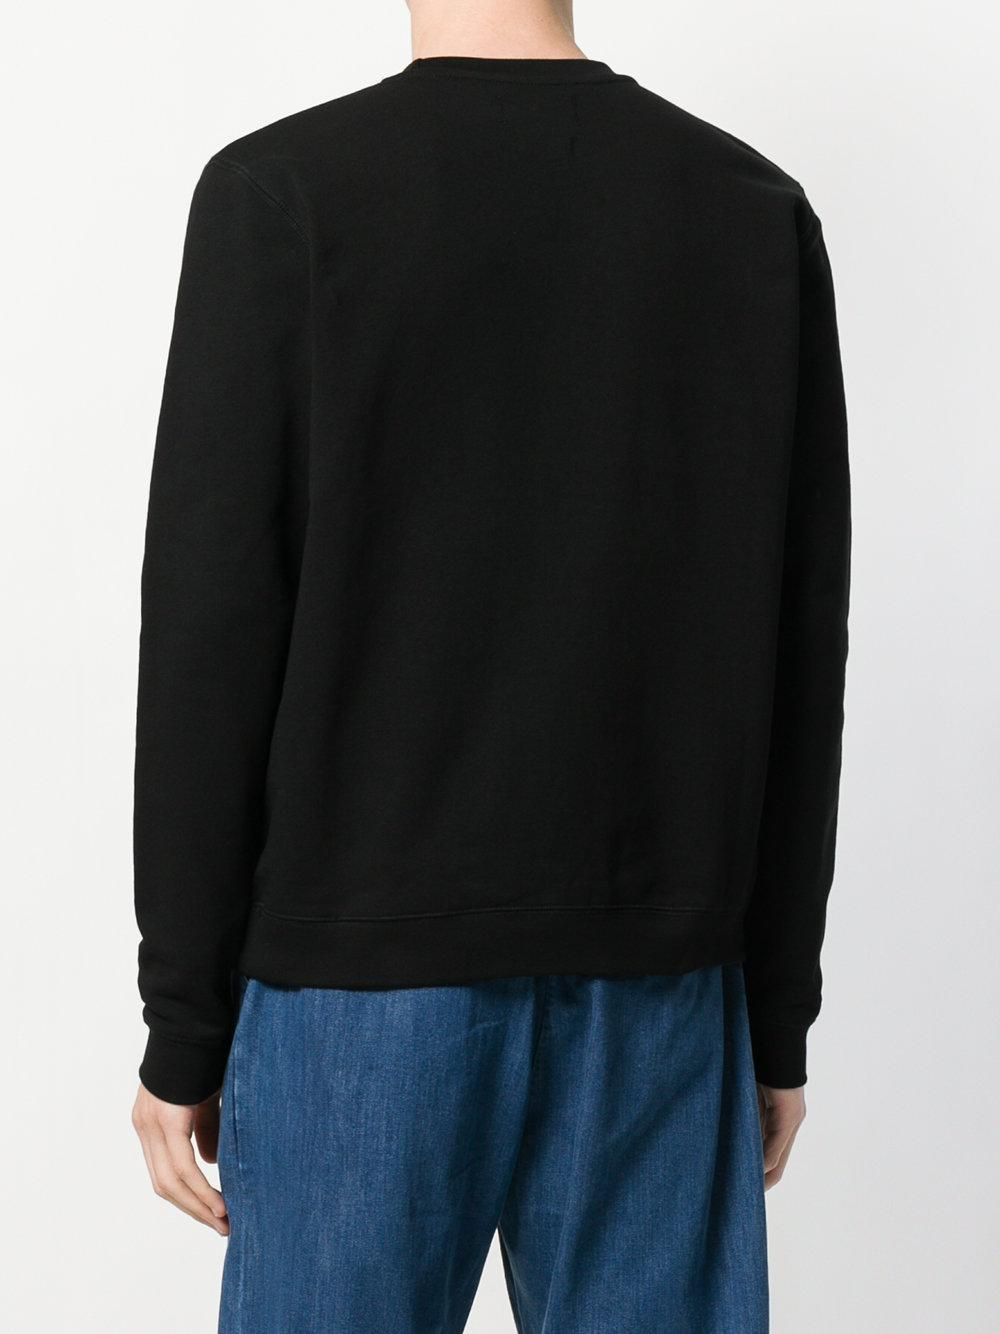 The Silted Company Cotton Slogan Sweatshirt in Black for Men